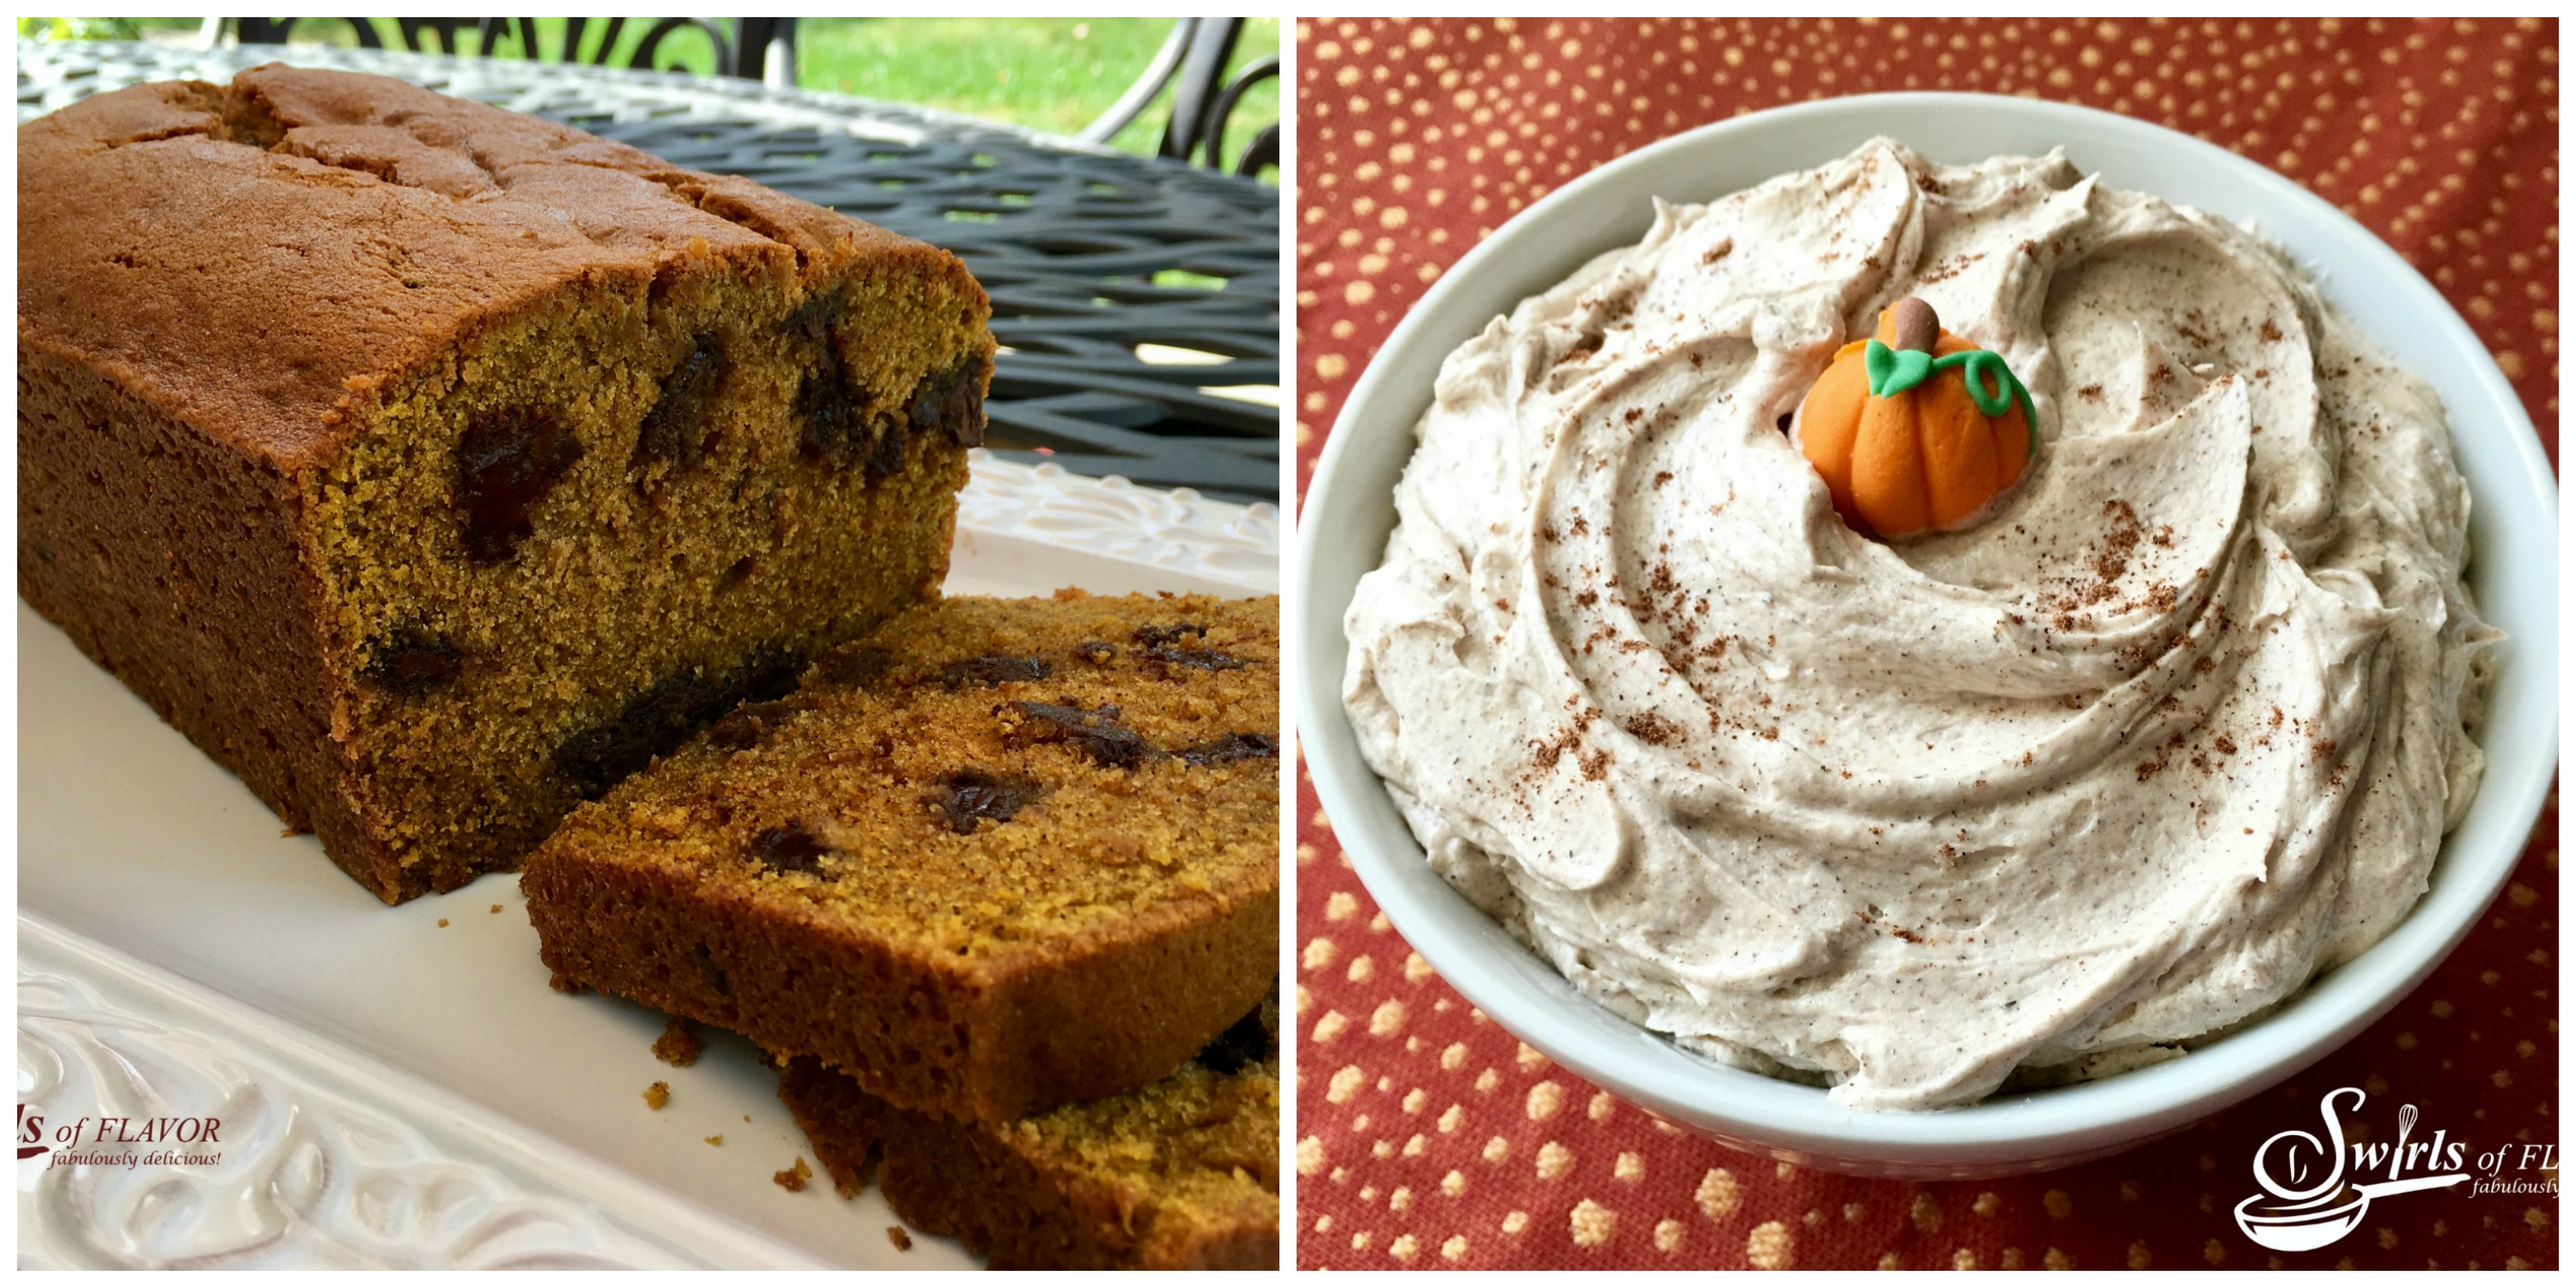 Pumpkin Spice Bread and Pumpkin Spice Frosting